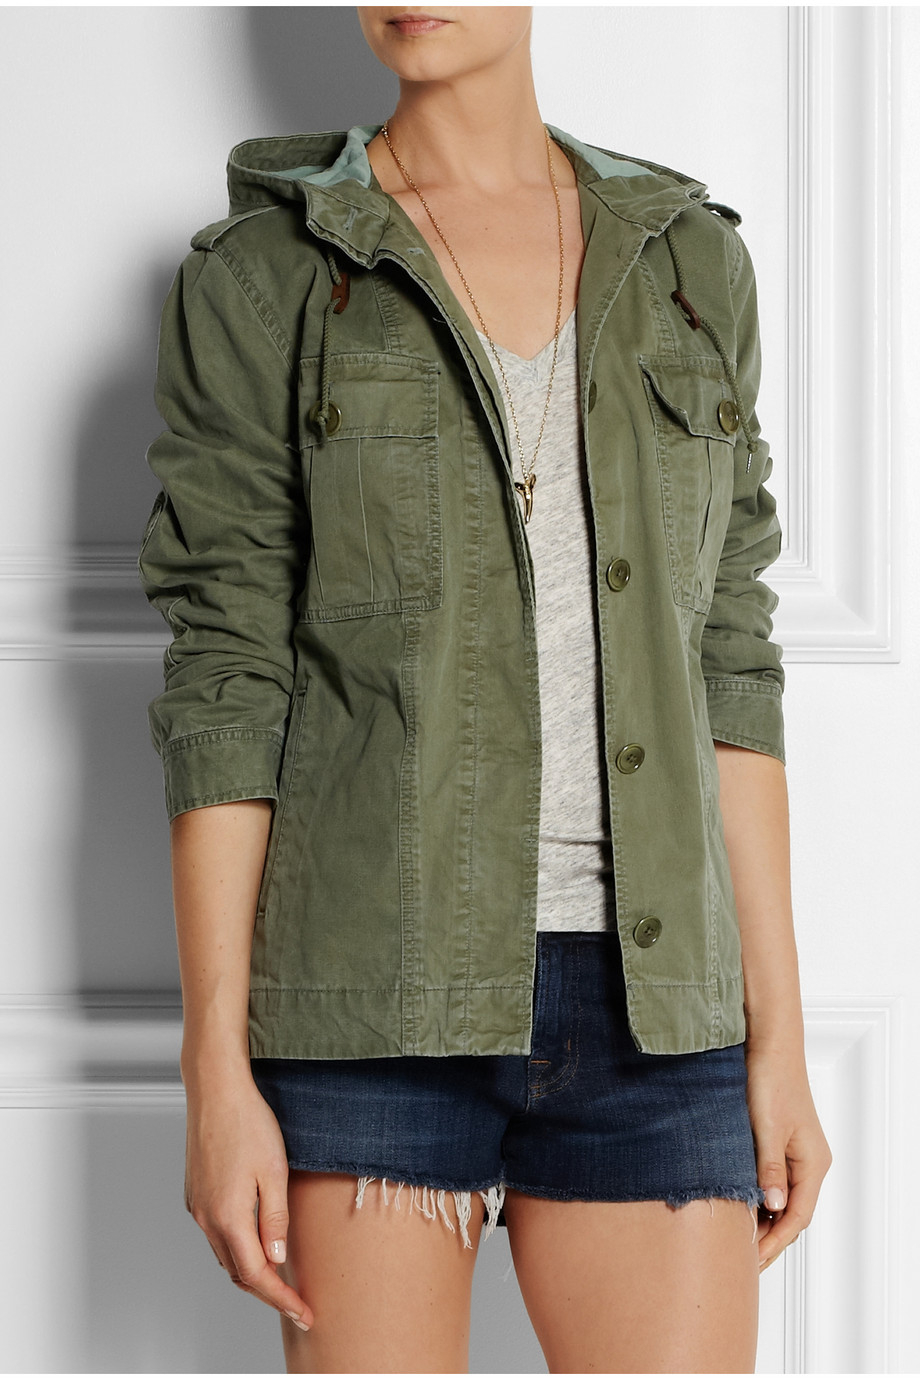 J.crew Hooded Cotton-Twill Jacket in Green | Lyst